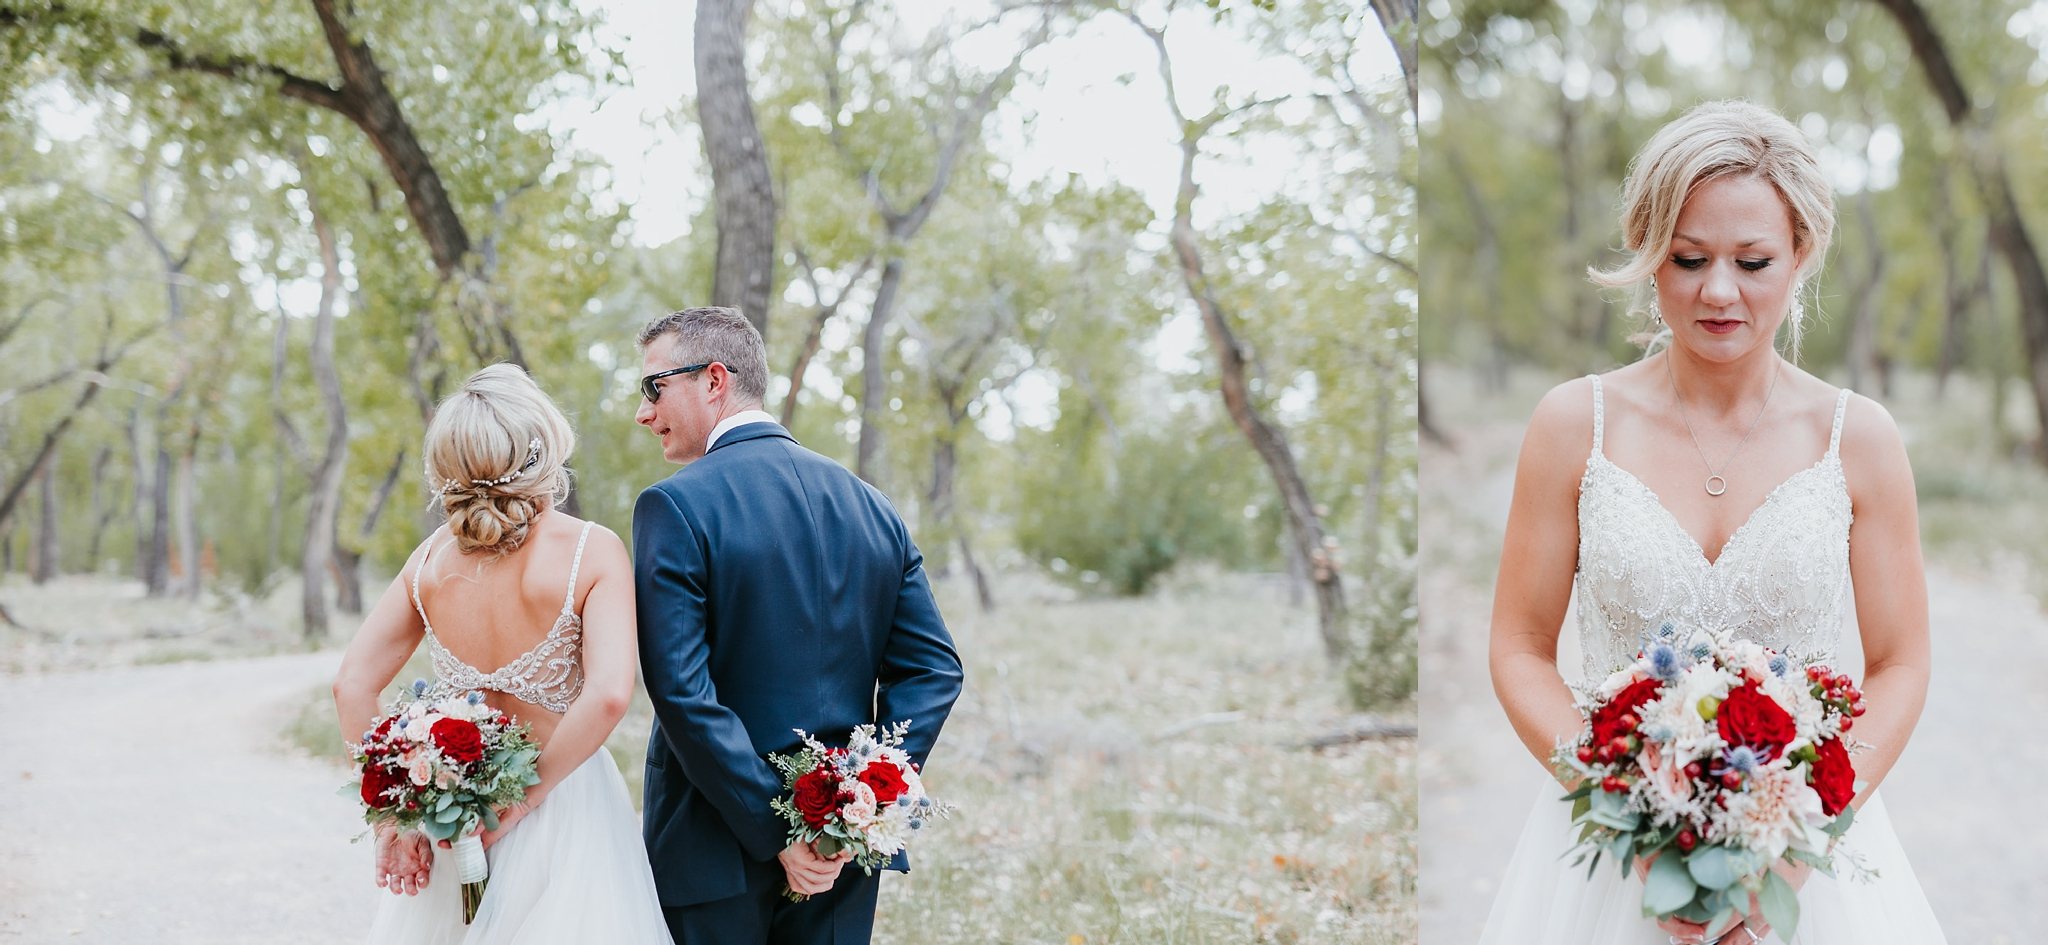 Alicia+lucia+photography+-+albuquerque+wedding+photographer+-+santa+fe+wedding+photography+-+new+mexico+wedding+photographer+-+new+mexico+wedding+-+santa+fe+wedding+-+albuquerque+wedding+-+bridal+hair_0071.jpg